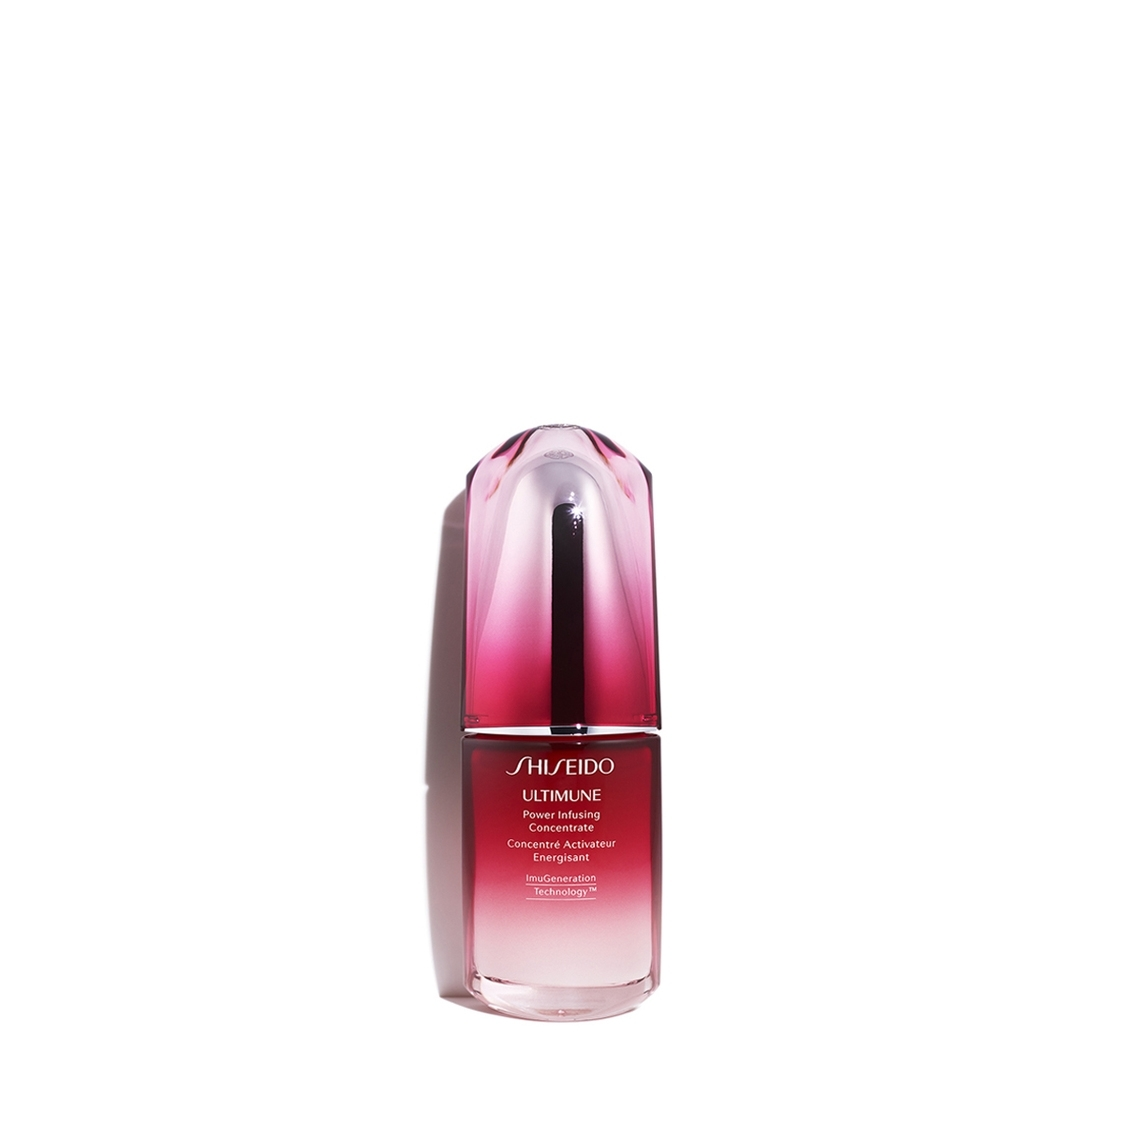 Ultimune Power Infusing Concentrate